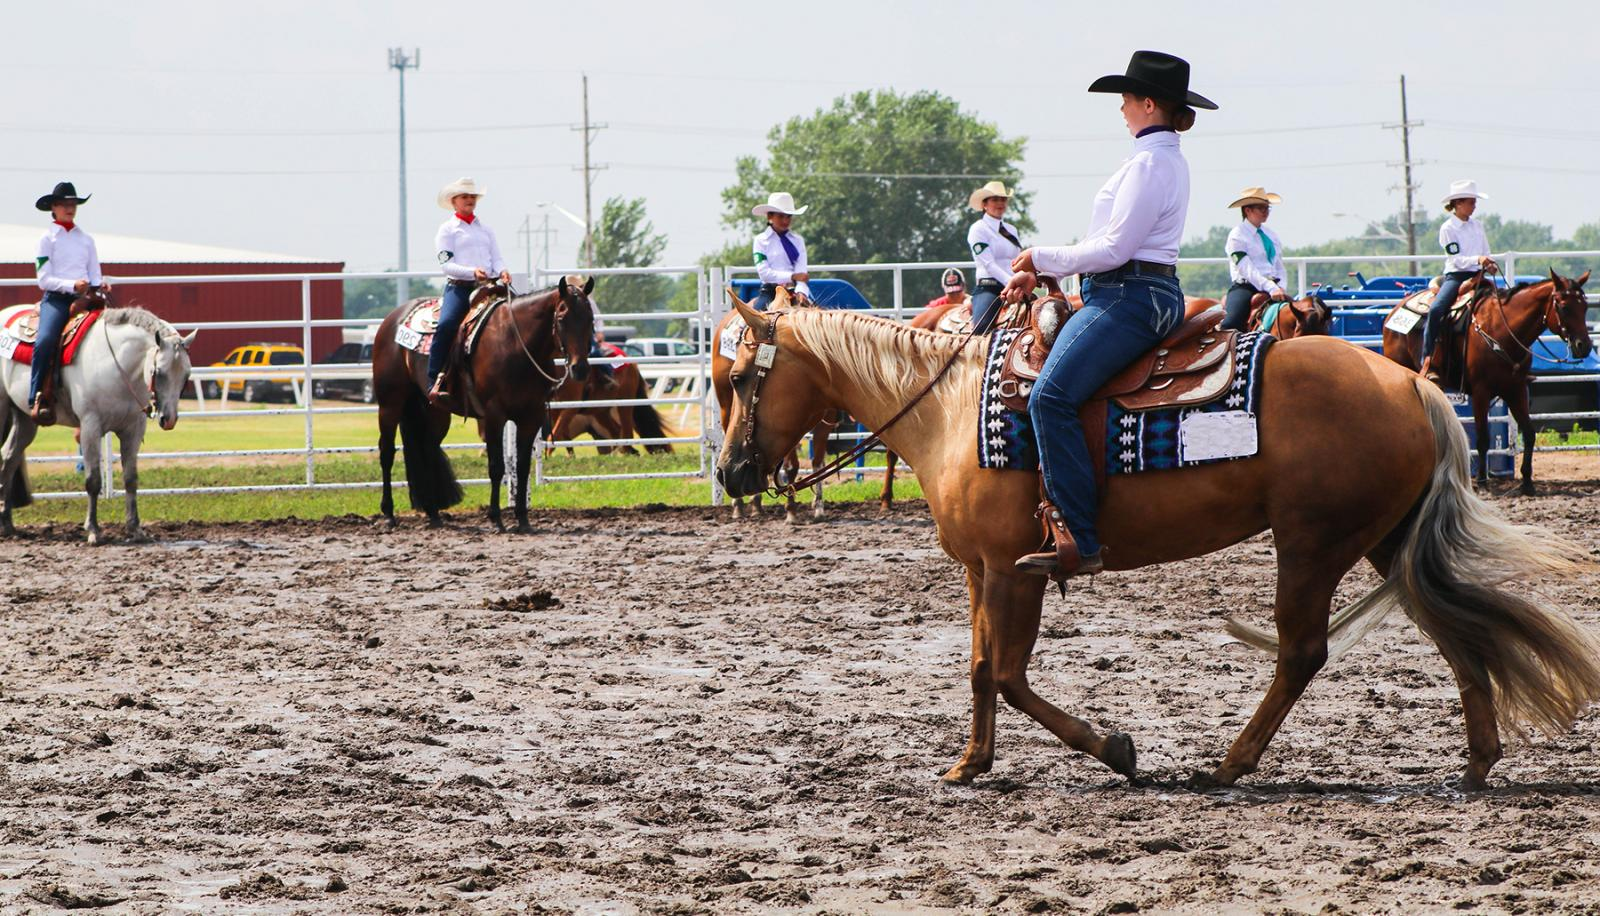 4-H members riding horses in a showring